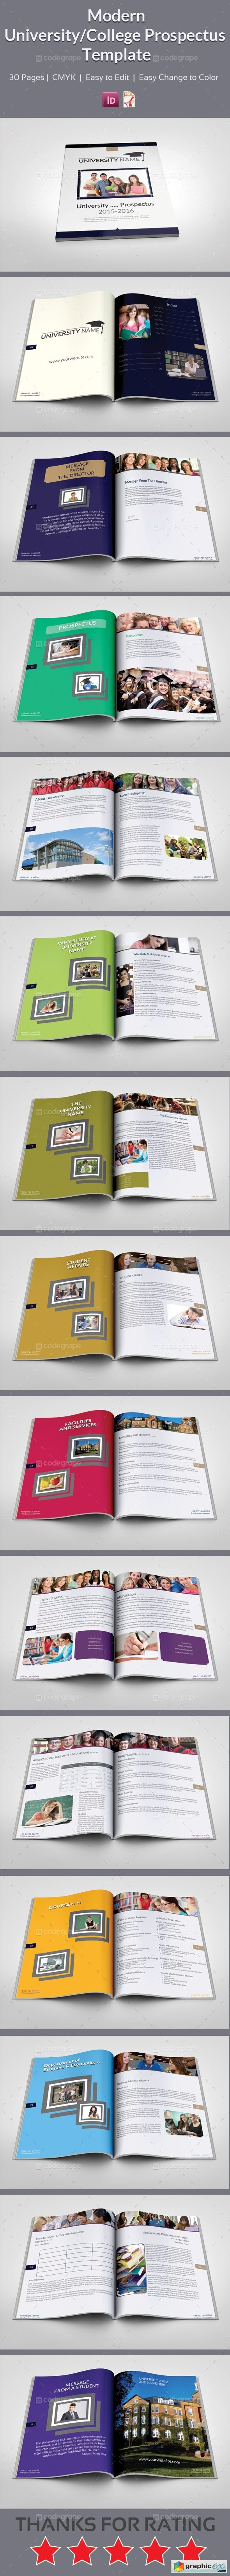 CodeGrape Modern University/College Prospectus Template